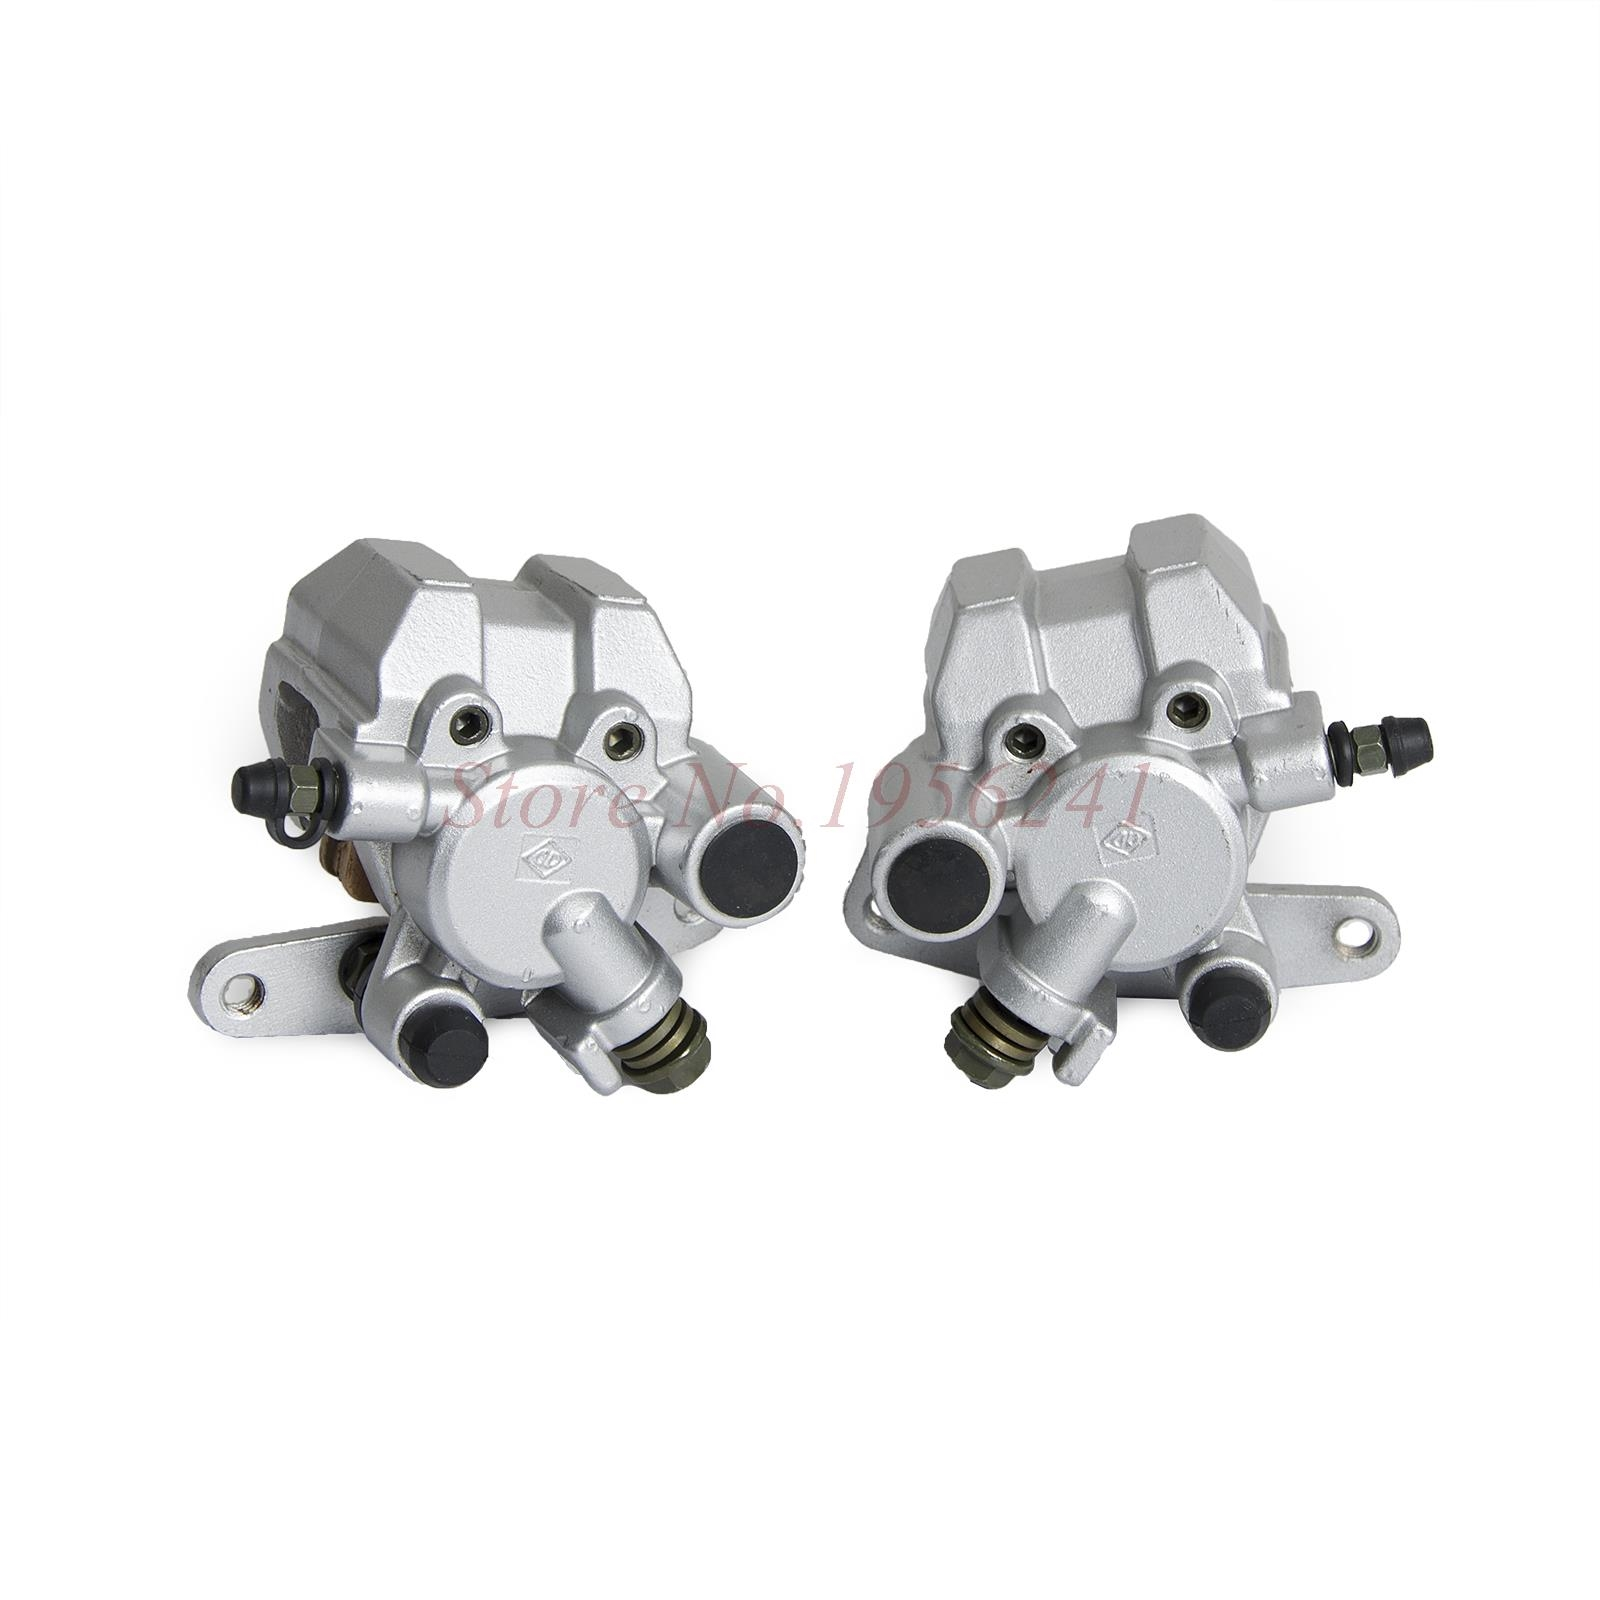 62.69$  Buy here - http://alinm9.shopchina.info/go.php?t=32678507691 - FRONT BRAKE CALIPER WITH BRAKE PADS FOR YAMAHA WARRIOR 350 1989-2004 1988 99 62.69$ #aliexpress